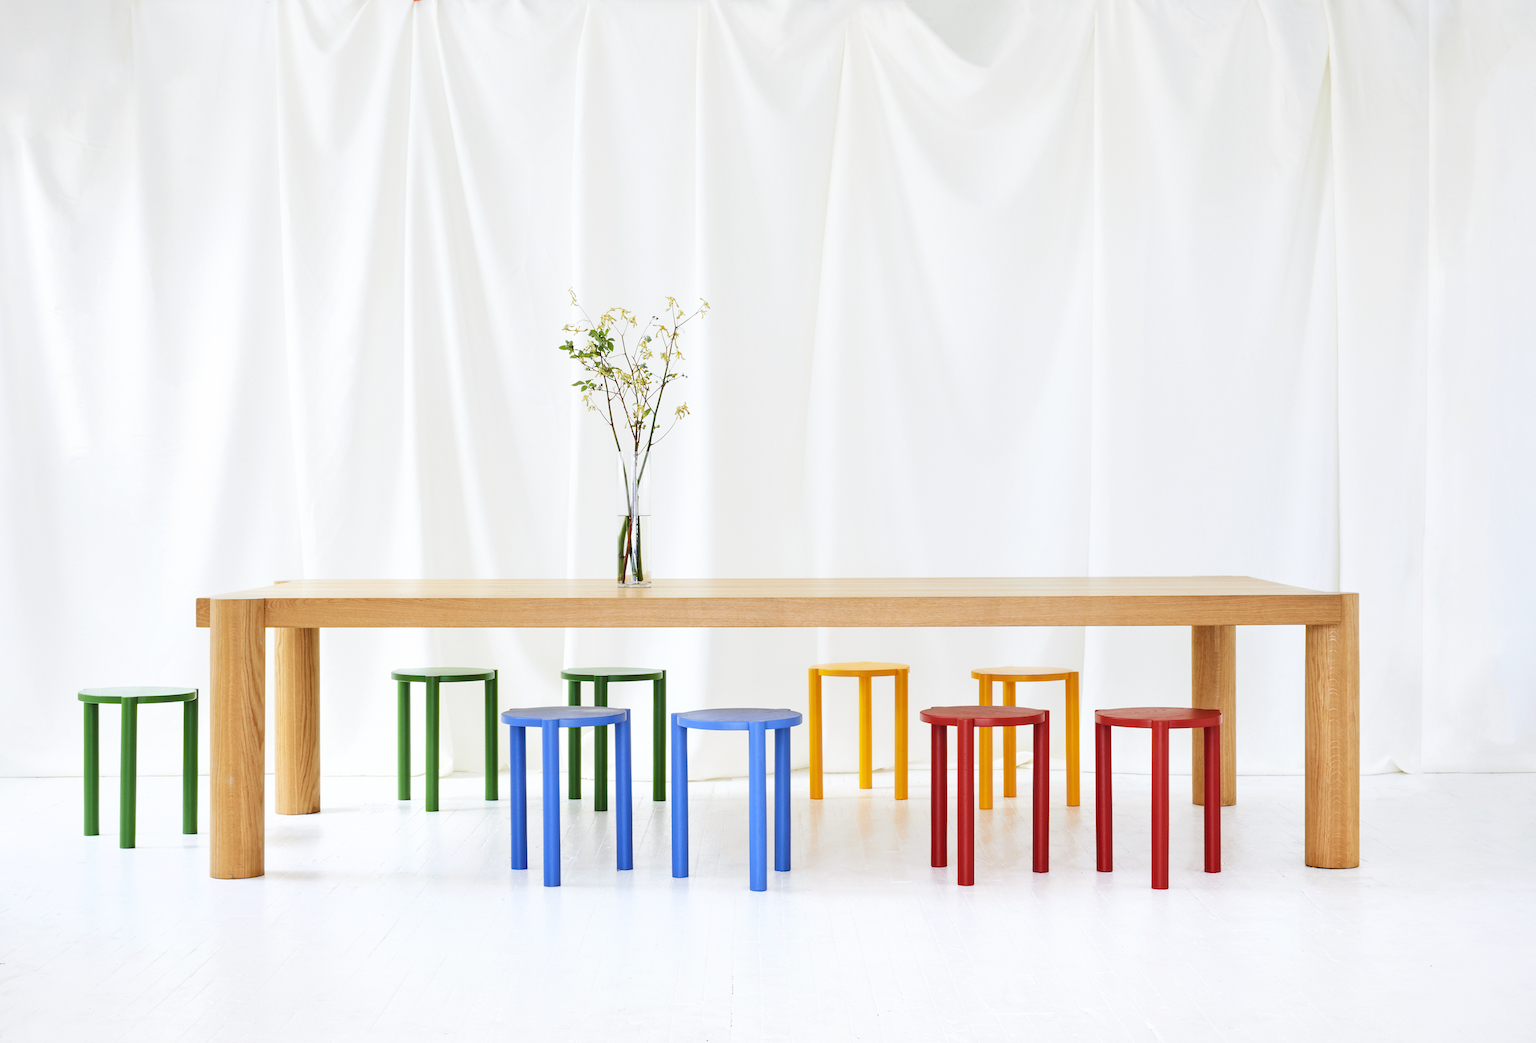 Large oak dining table with round legs surrounded by three-legged stools (also with round legs) in different colors against white backdrop.